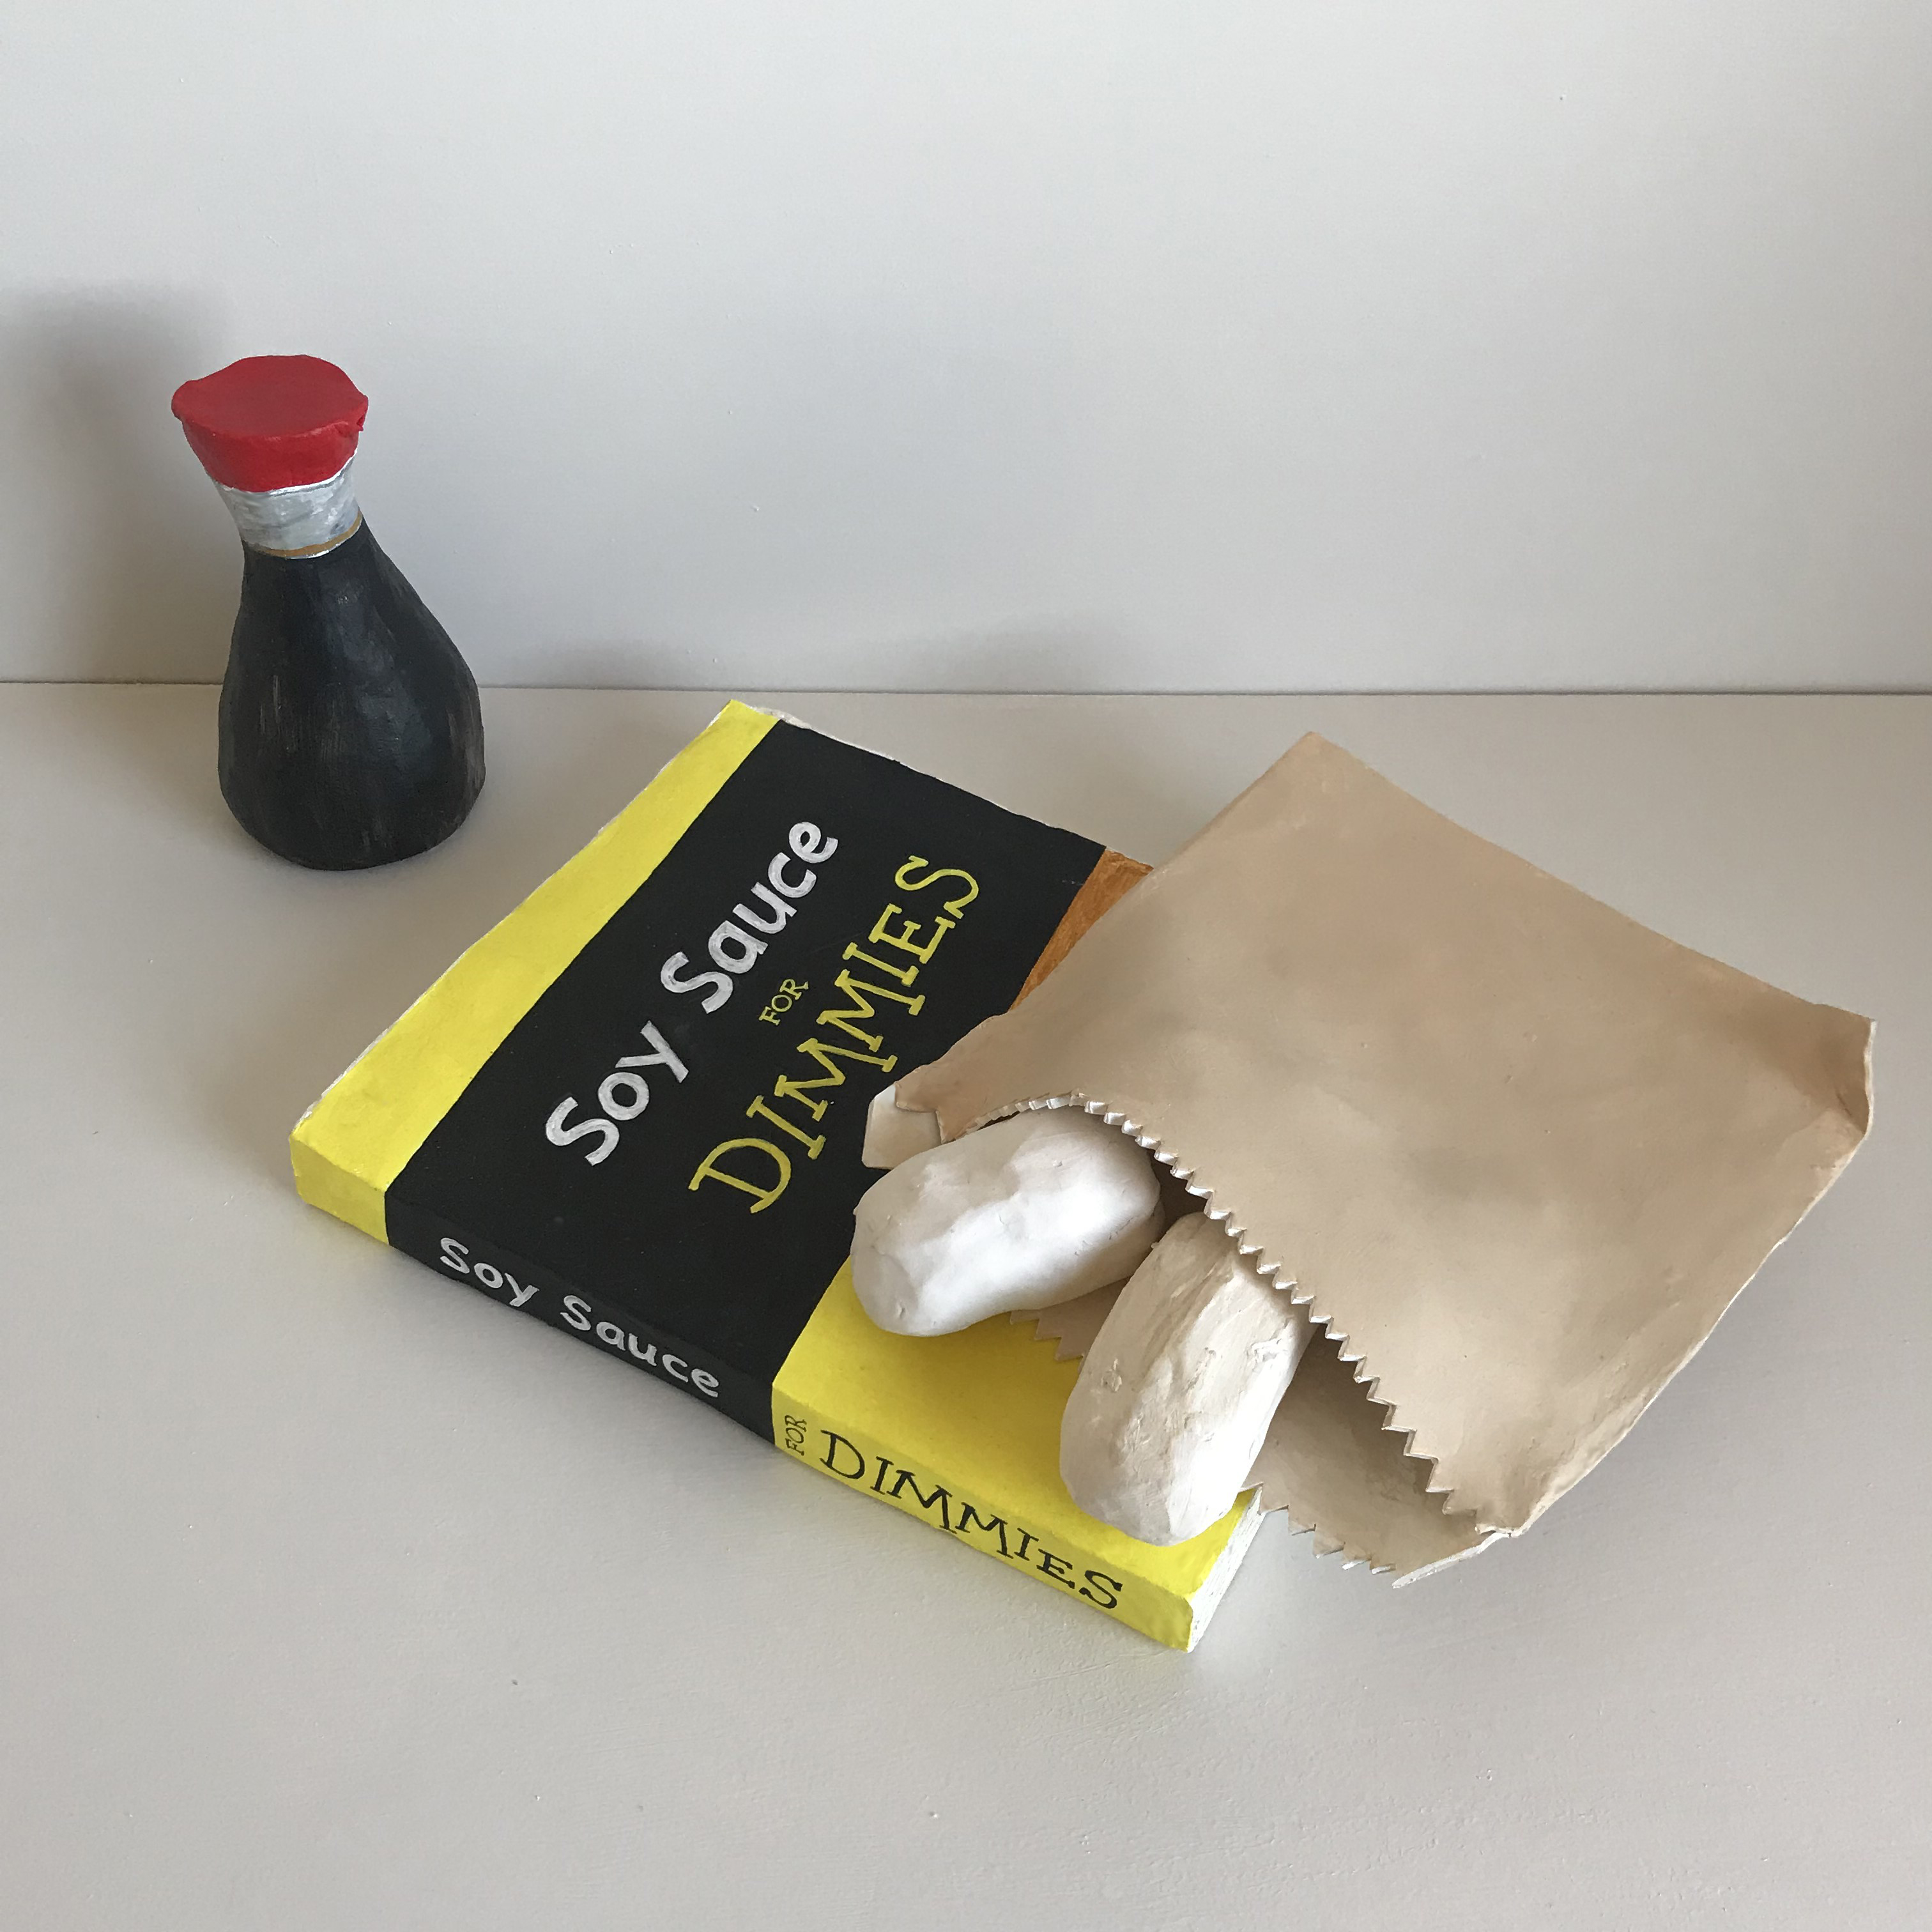 Soy Sauce For Dimmies, 2020 <br/> Acrylic on kiln fired ceramic, 45 x 35 x 25cm